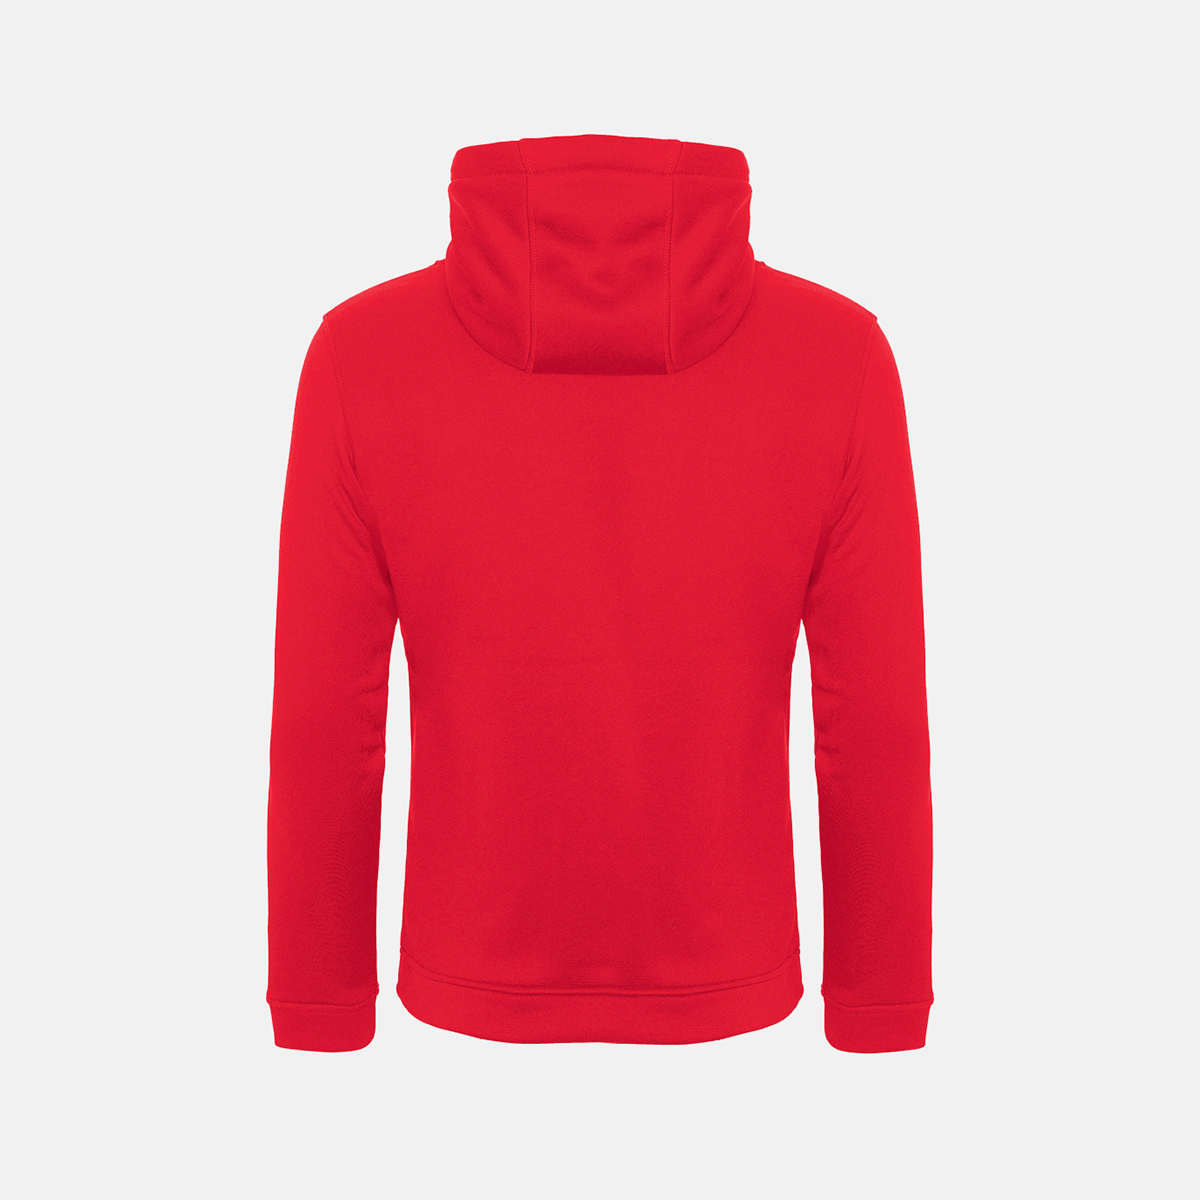 MAN'S DOHA HOODED PULLOVER RED